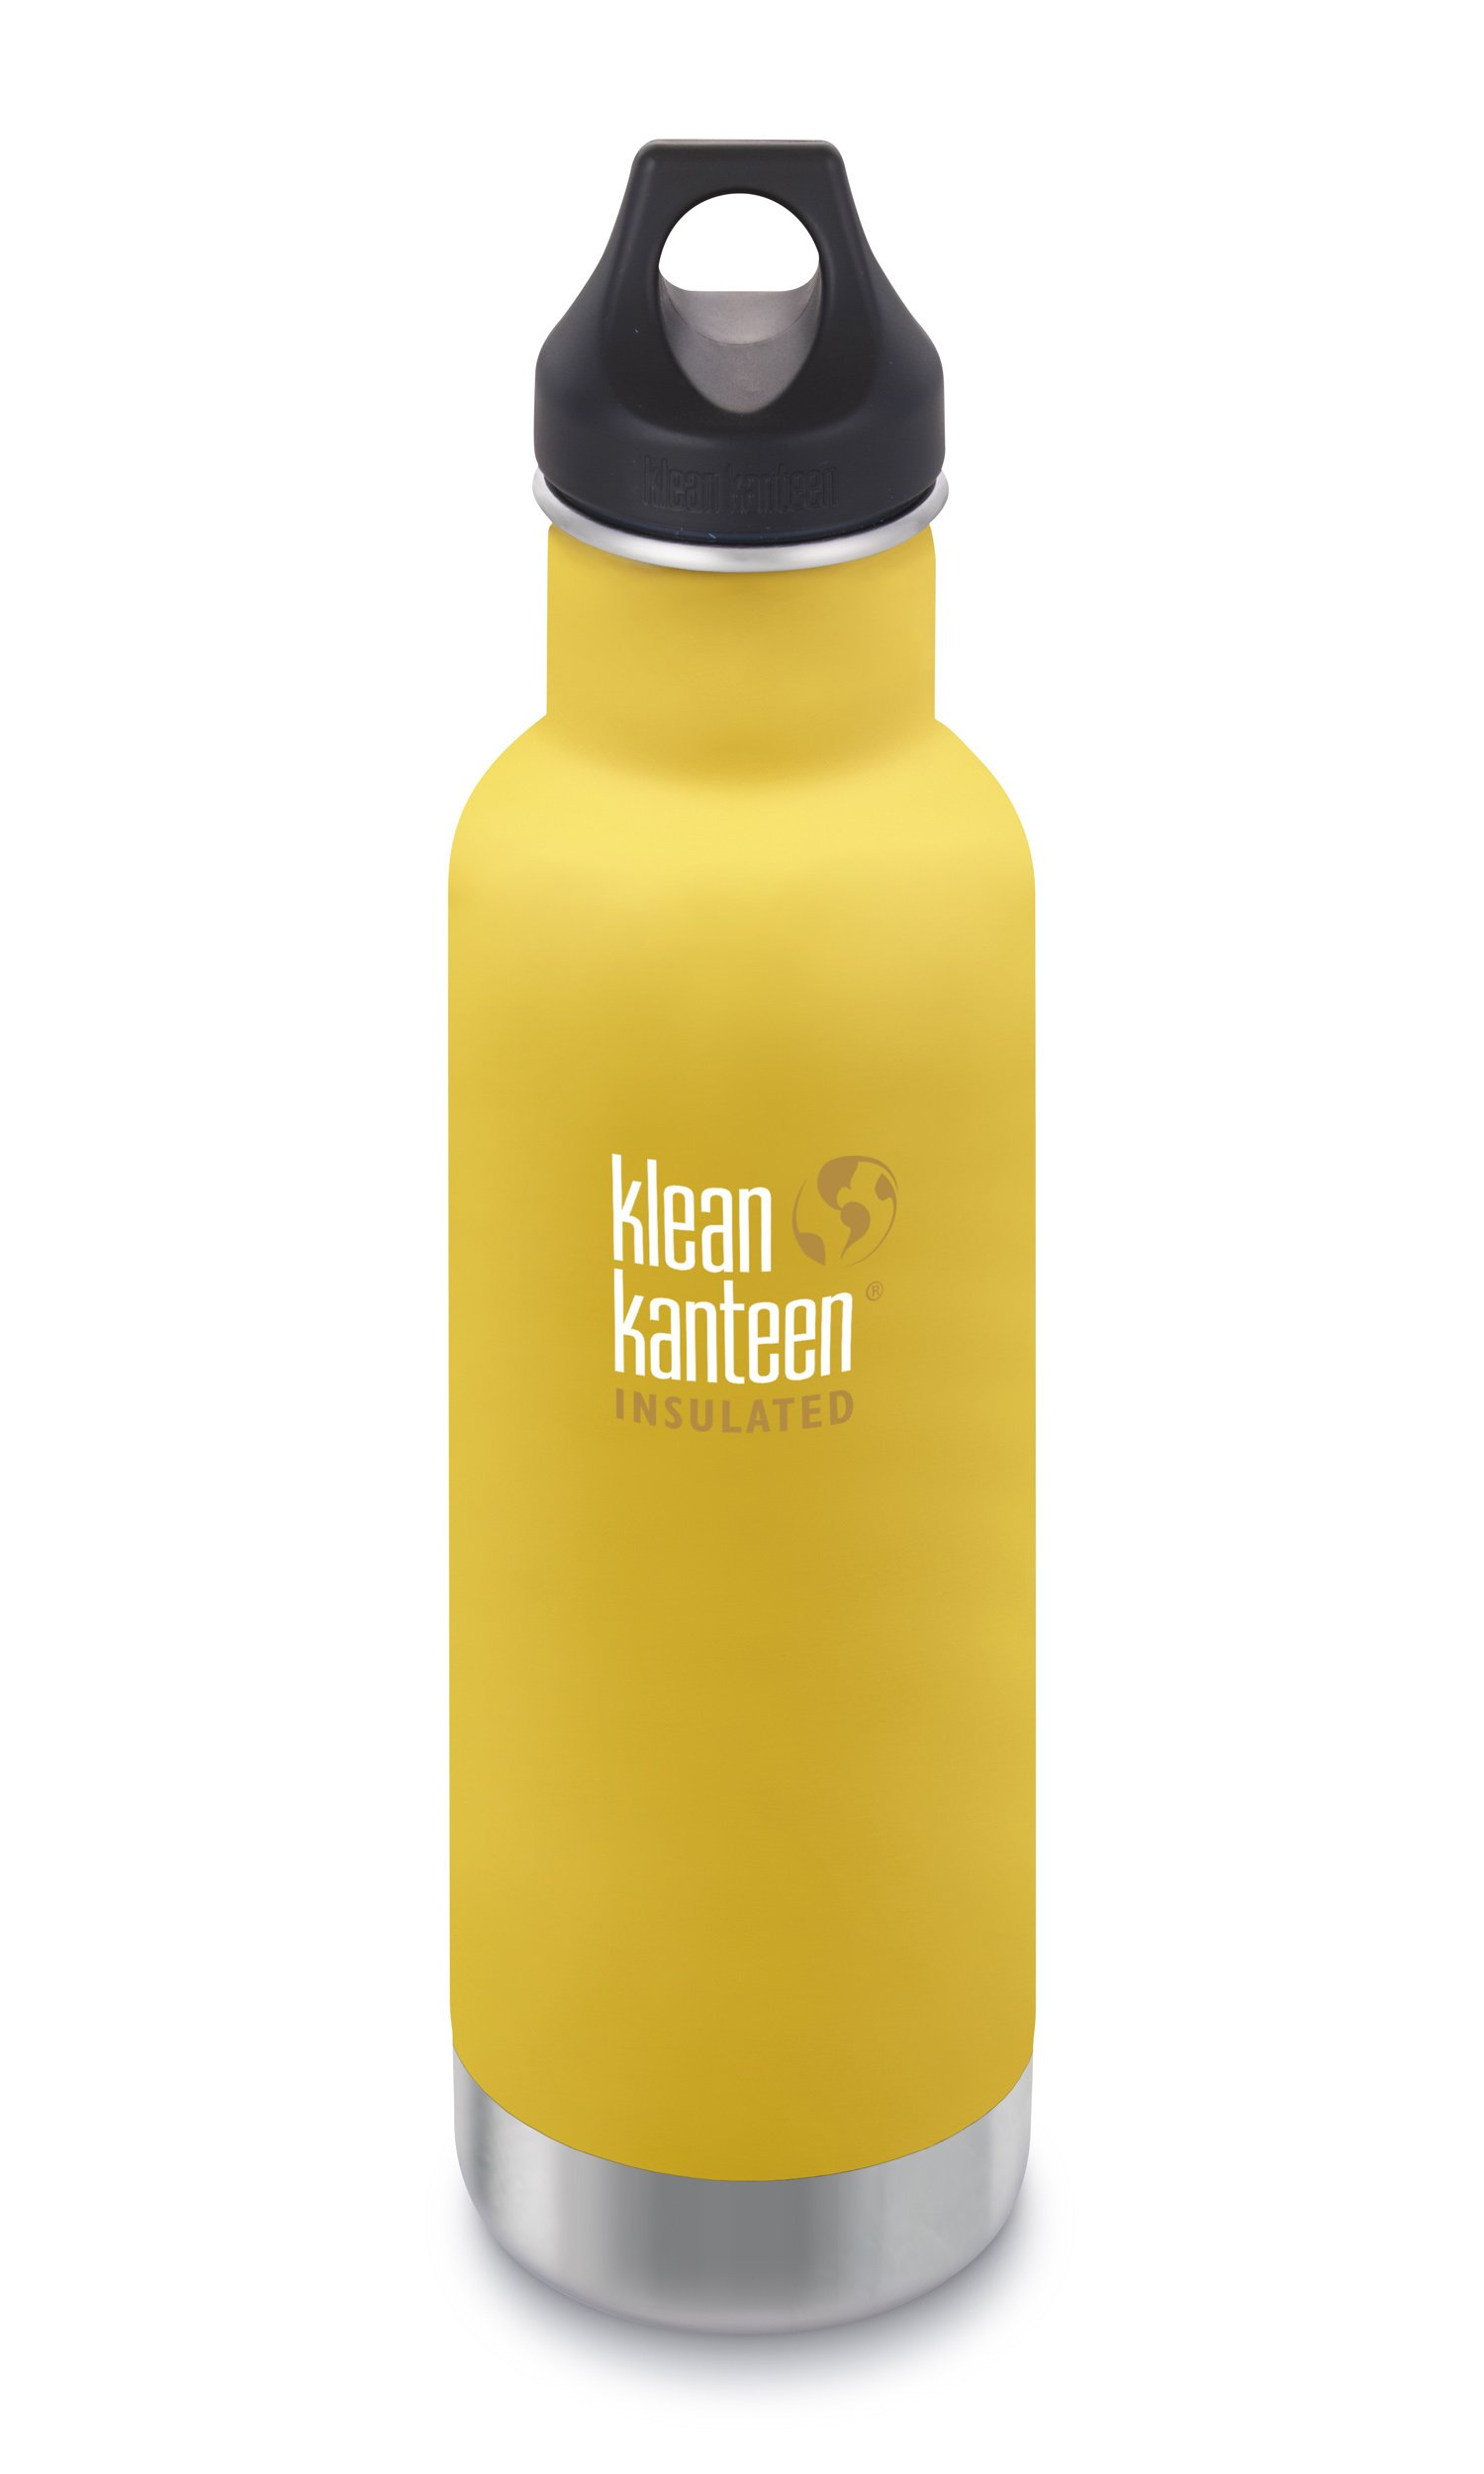 Klean Kanteen Classic Insulated Stainless Steel Water Bottle with Klean Coat and Leak Proof Loop Cap - 20oz - Lemon Curry